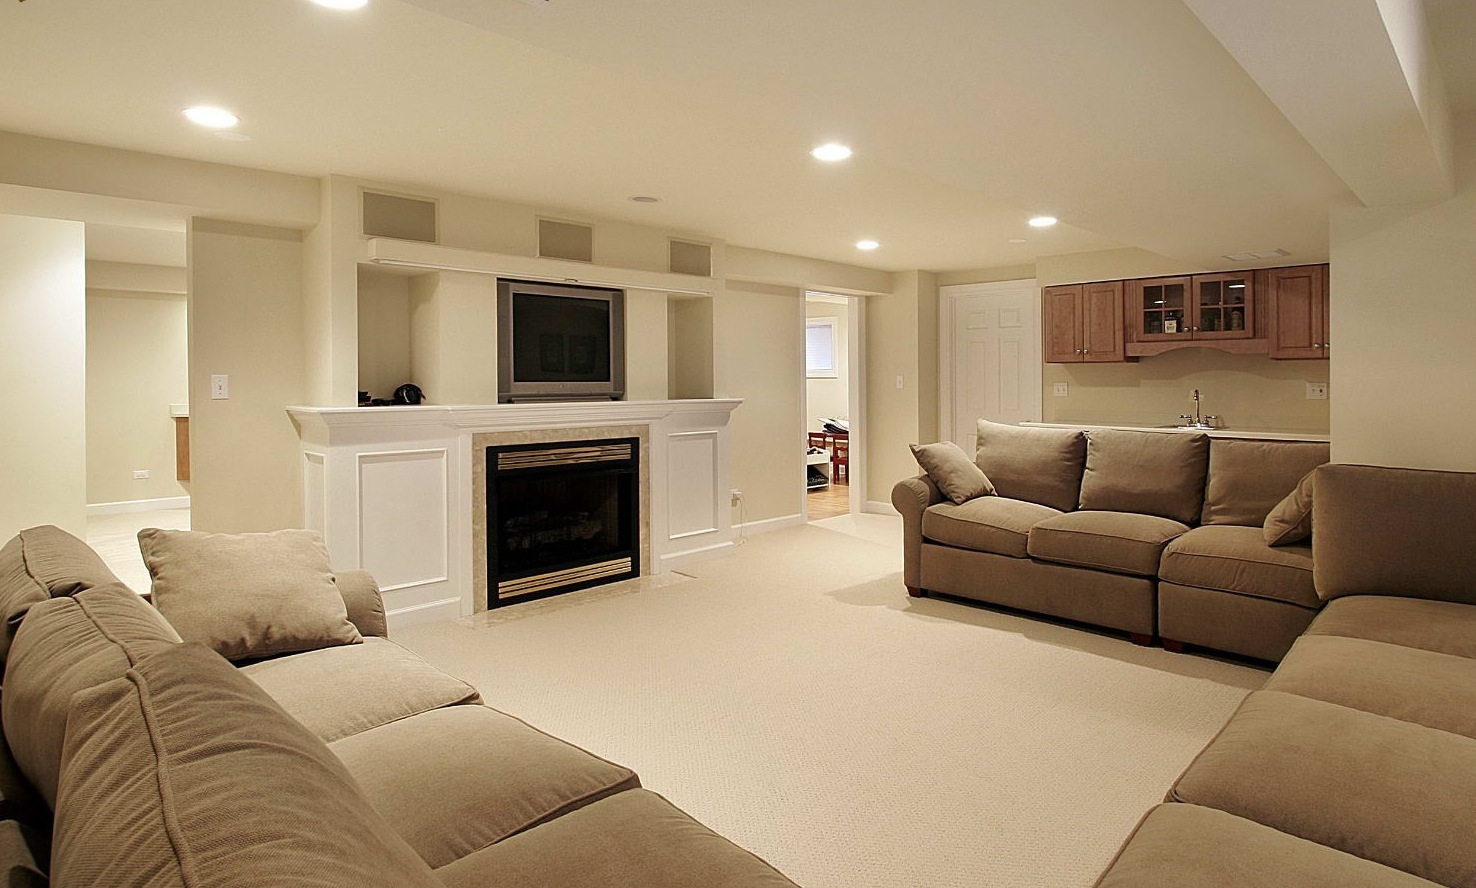 Basement Remodeling Ideas Prepossessing 30 Basement Remodeling Ideas & Inspiration Design Inspiration